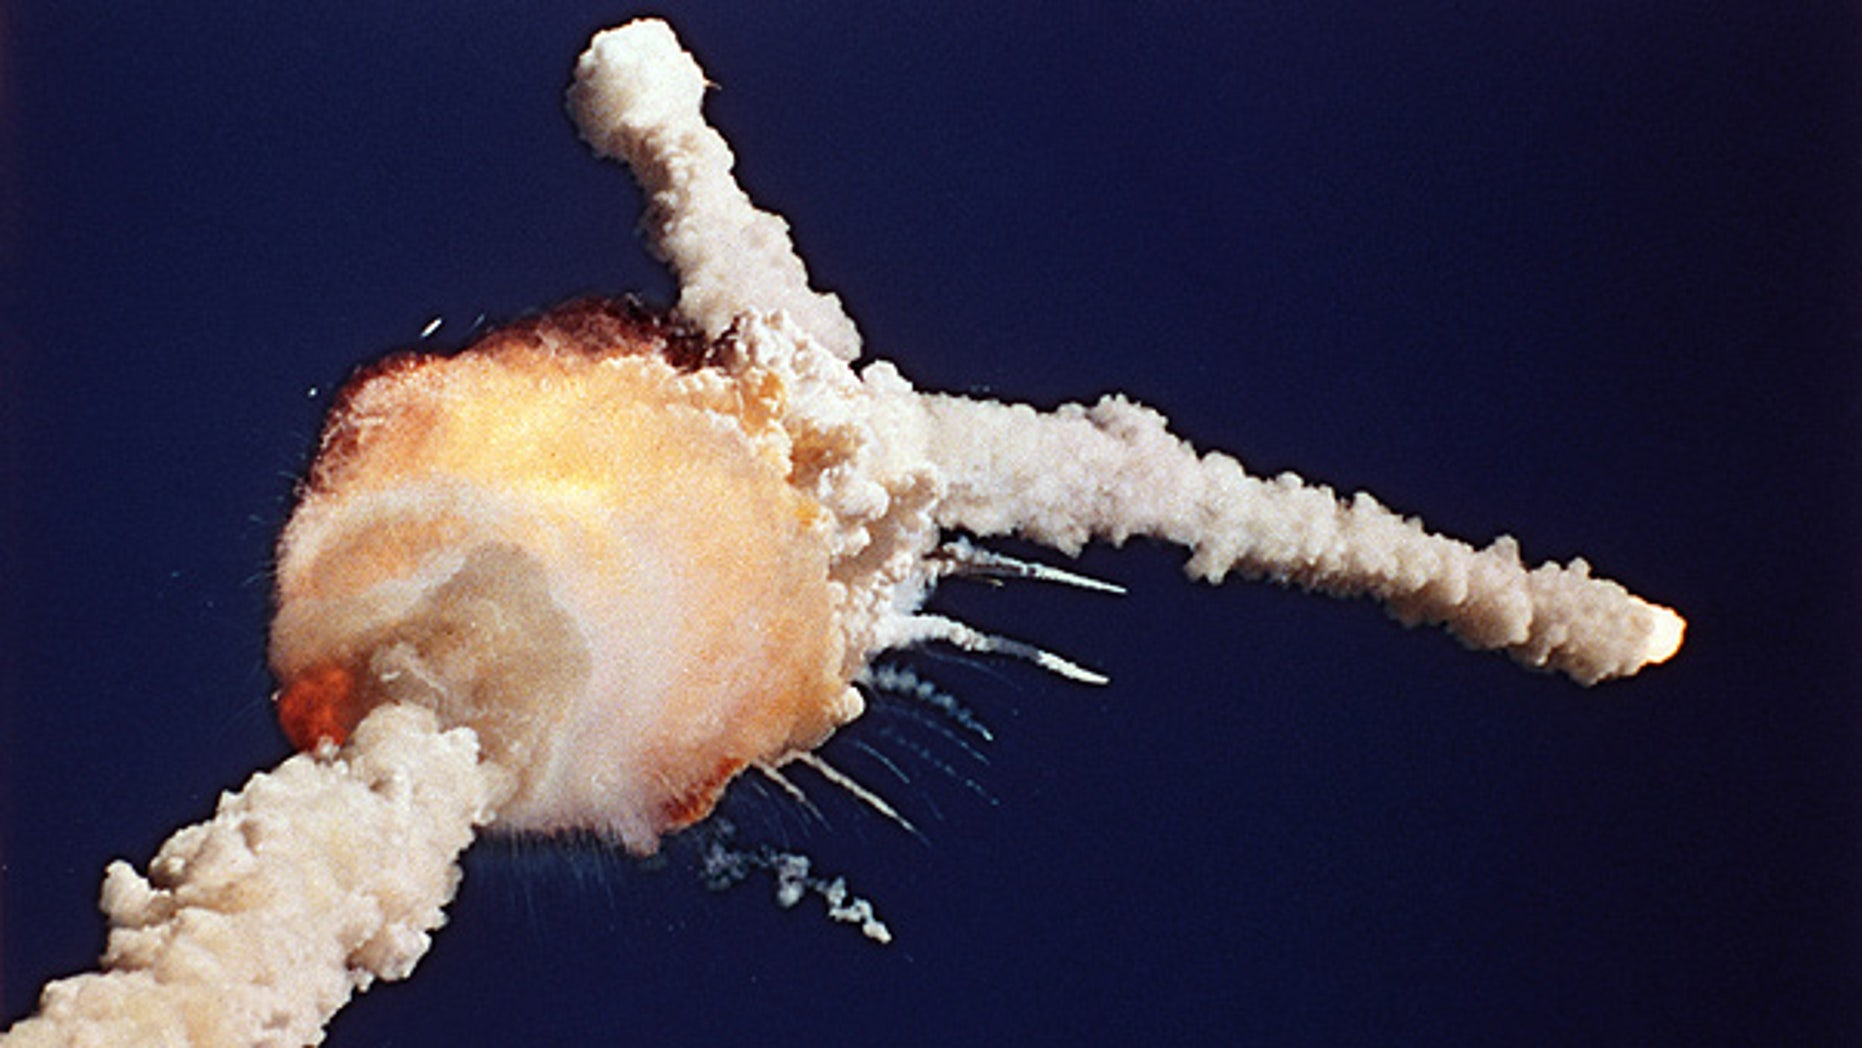 Jan. 28, 1986: The space shuttle Challenger explodes shortly after lifting off from the Kennedy Space Center in Cape Canaveral, Fla.